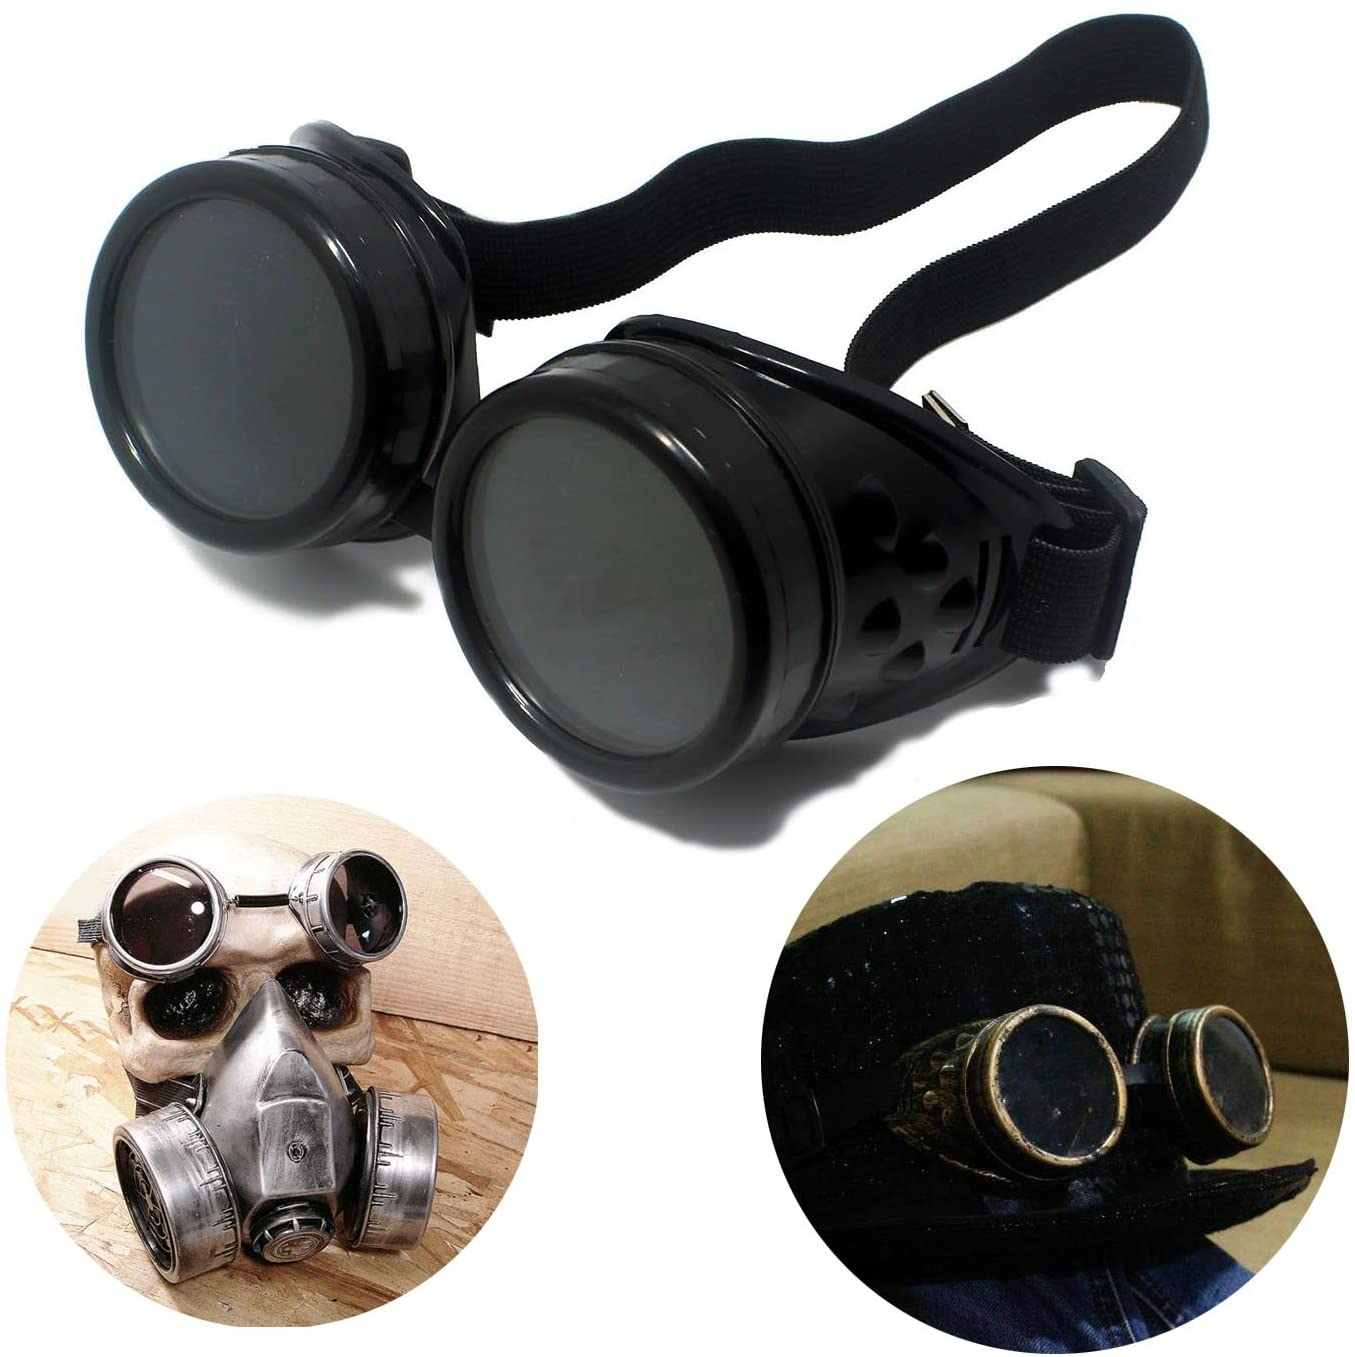 T&B Vintage Steampunk Goggles Glasses New Sell Cyber Punk Black